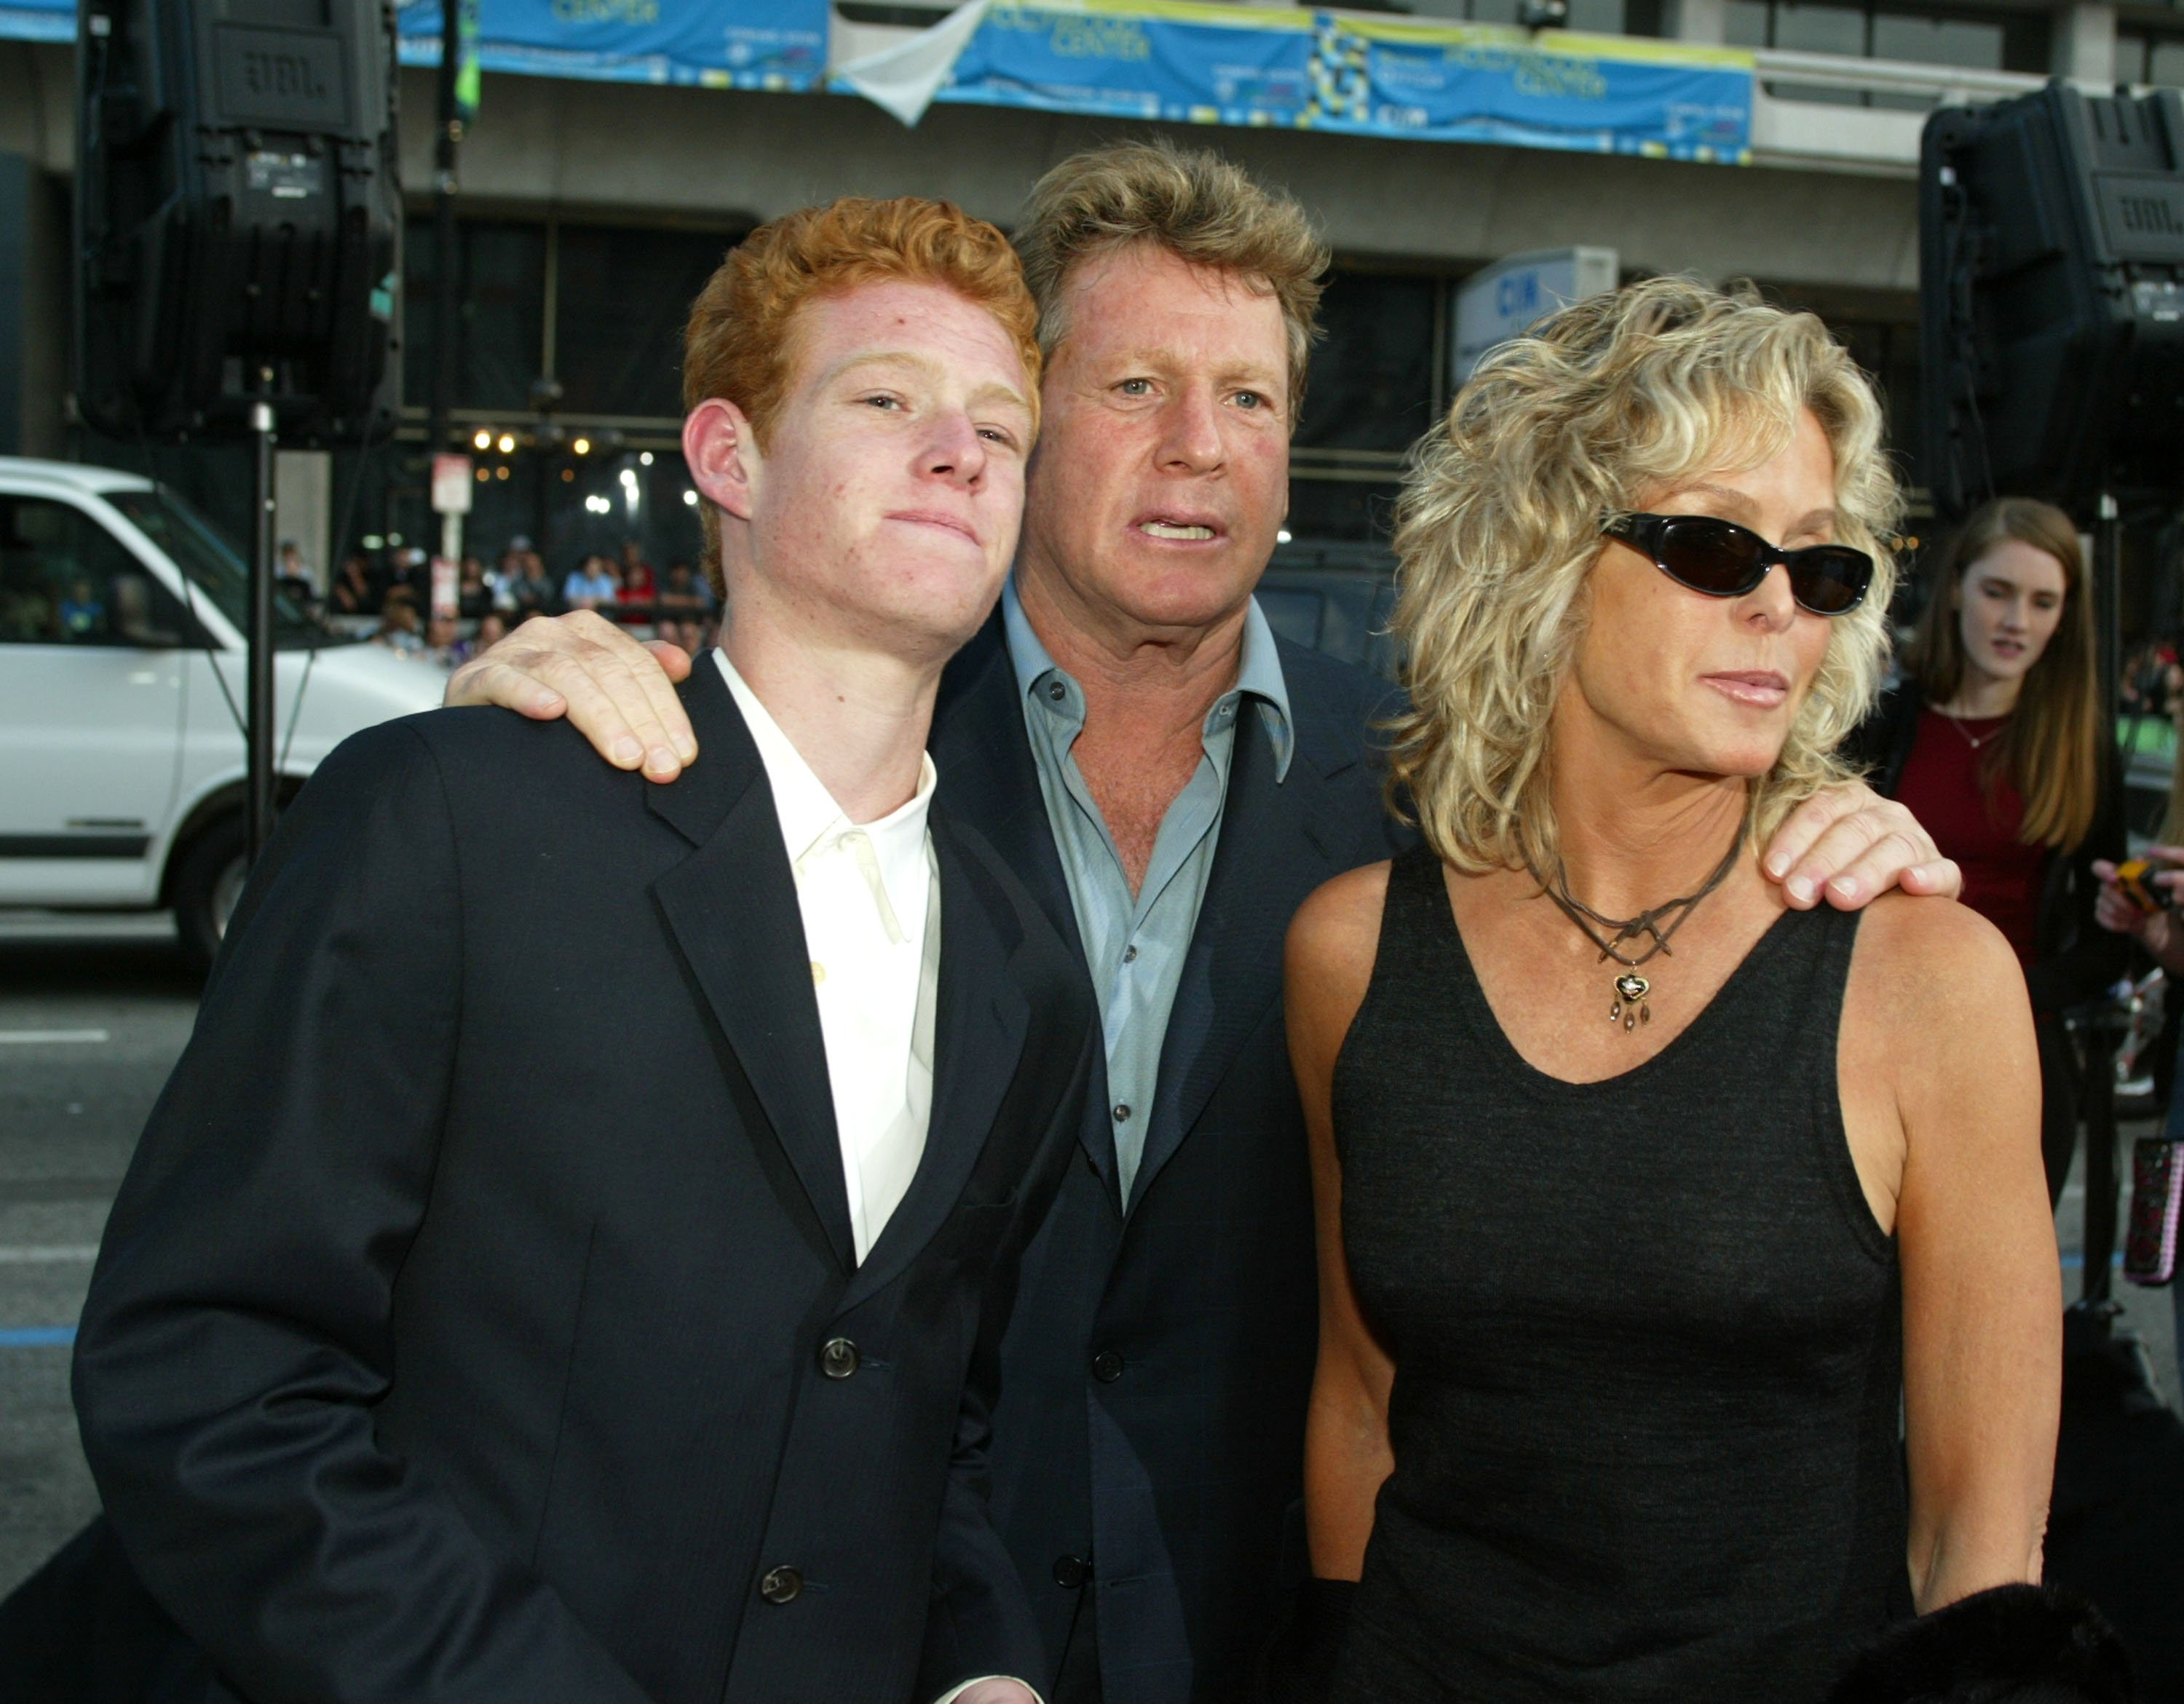 Farah Fawcett with Ryan O'Neal and their son Redmond O'Neal | Photo: Getty Images